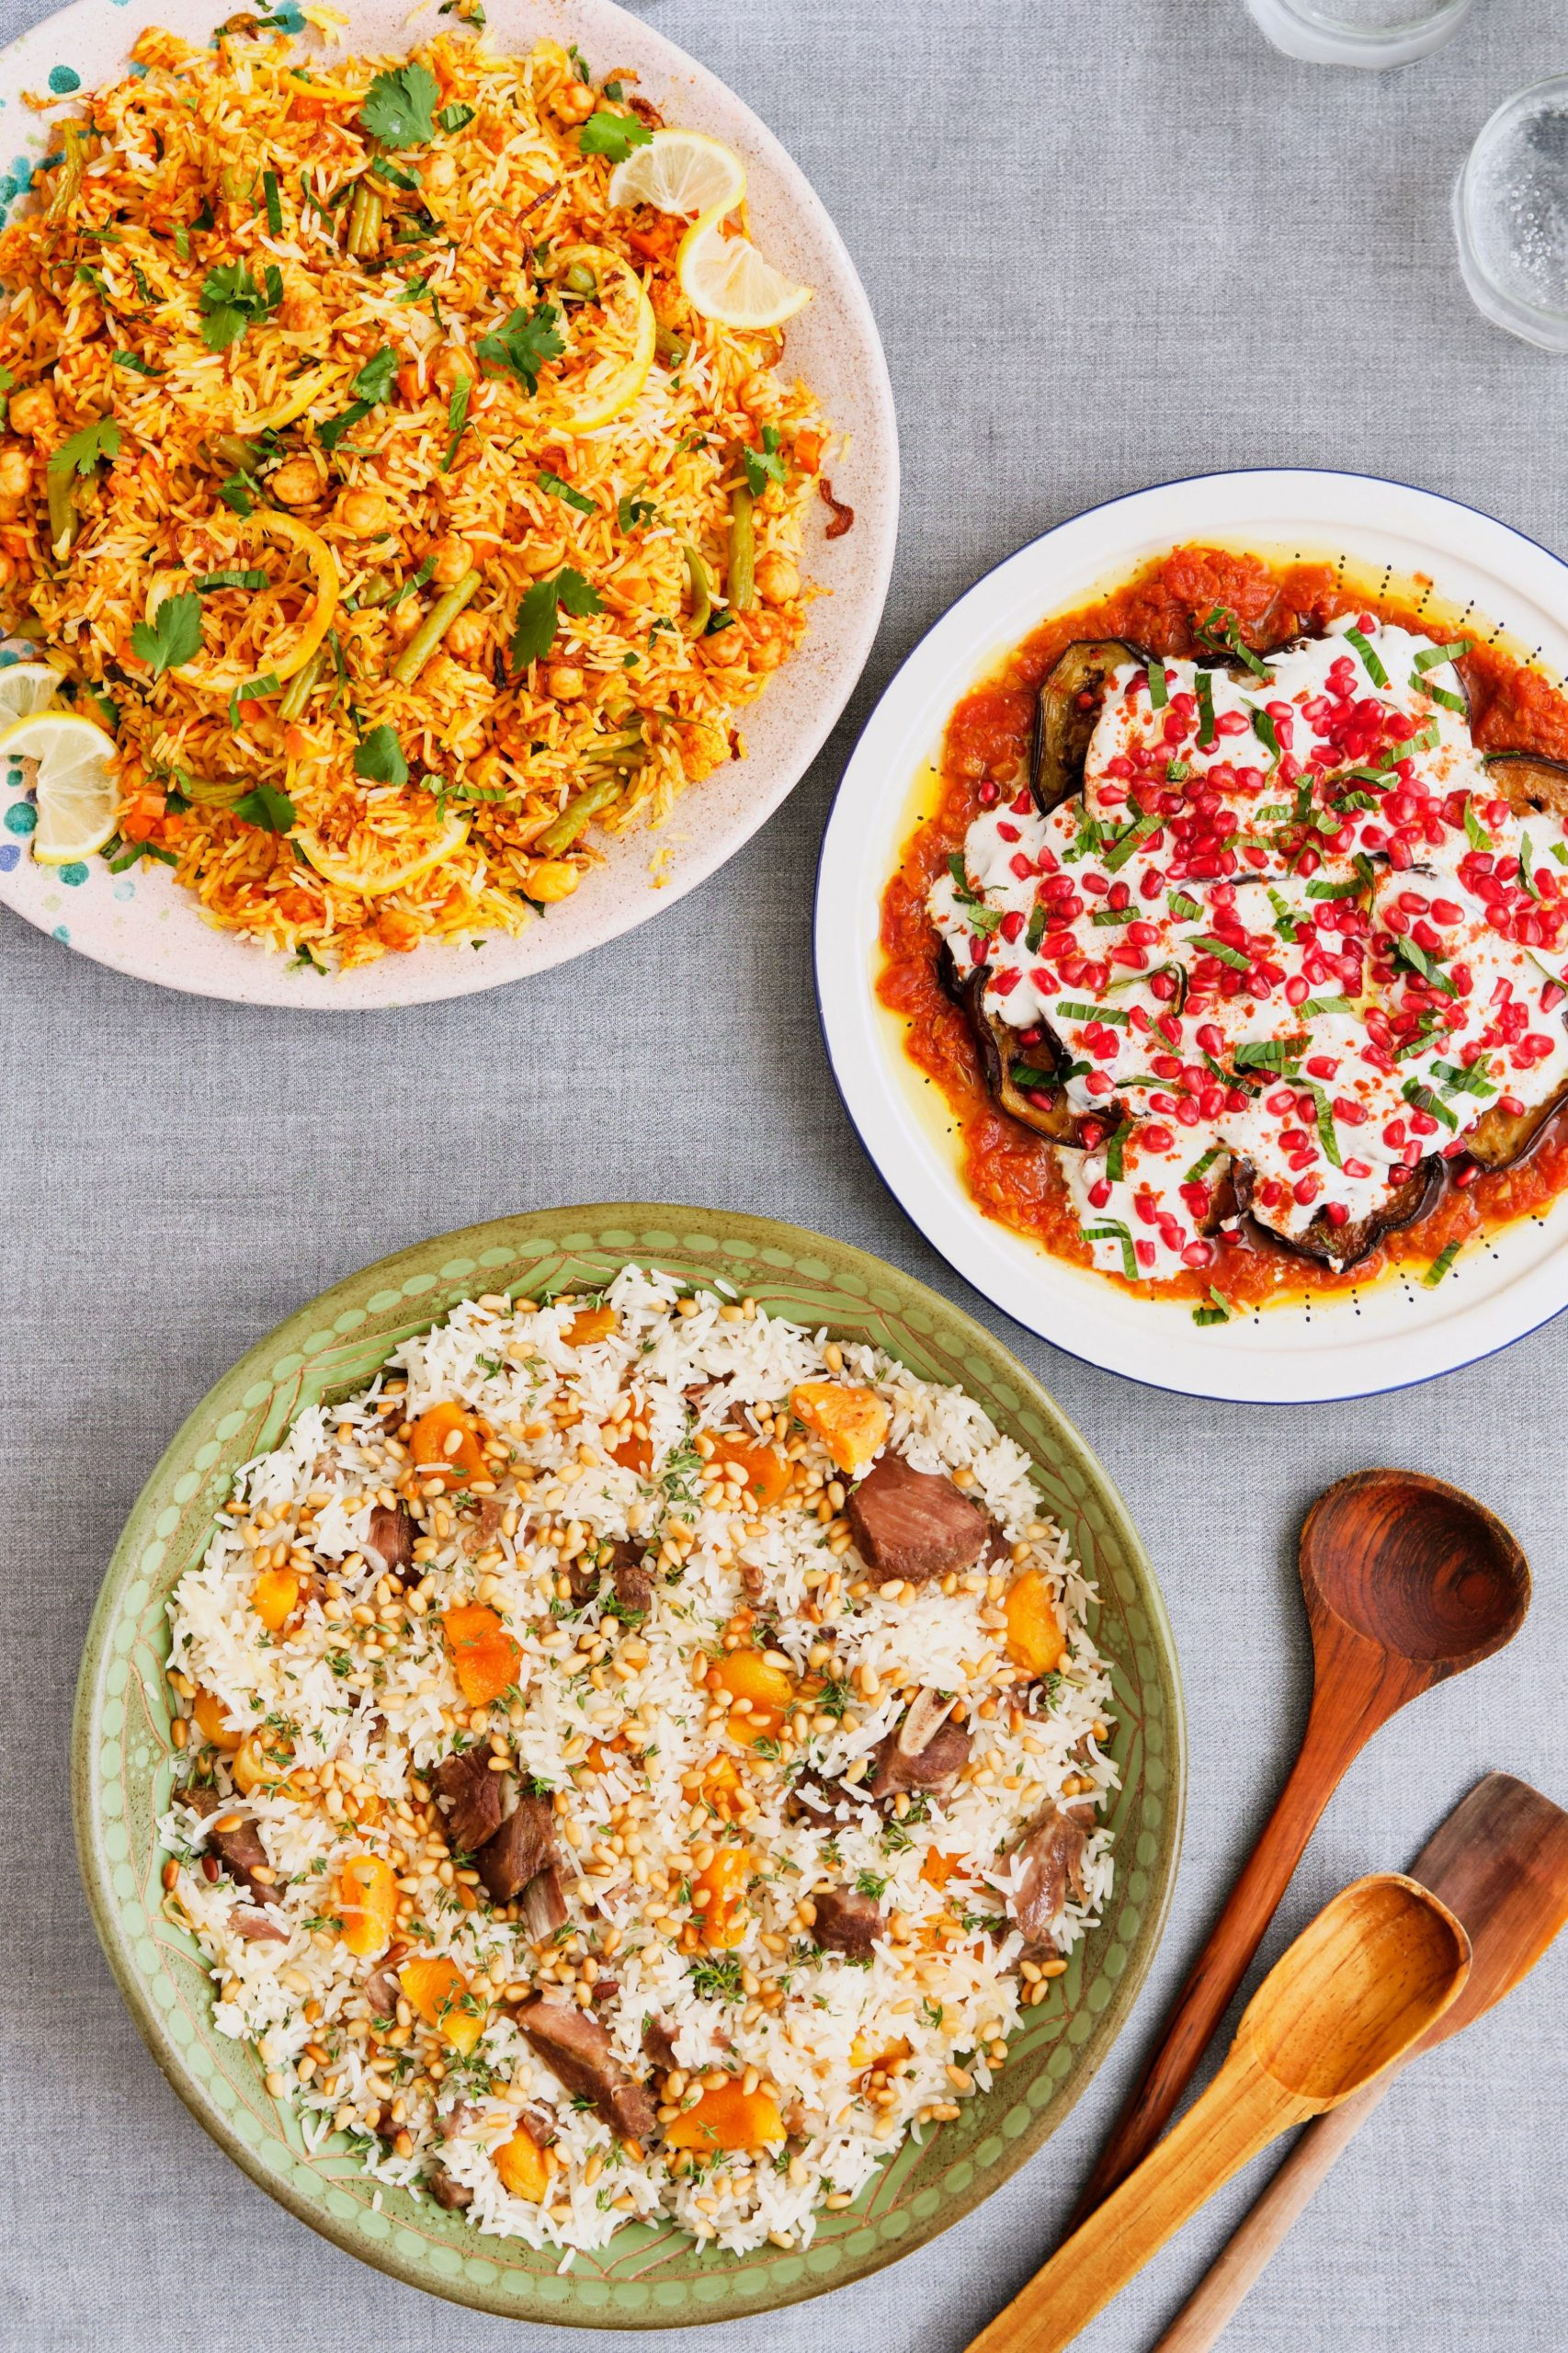 Festive recipes for vegans and meat-lovers alike this Eid ul Adha ...